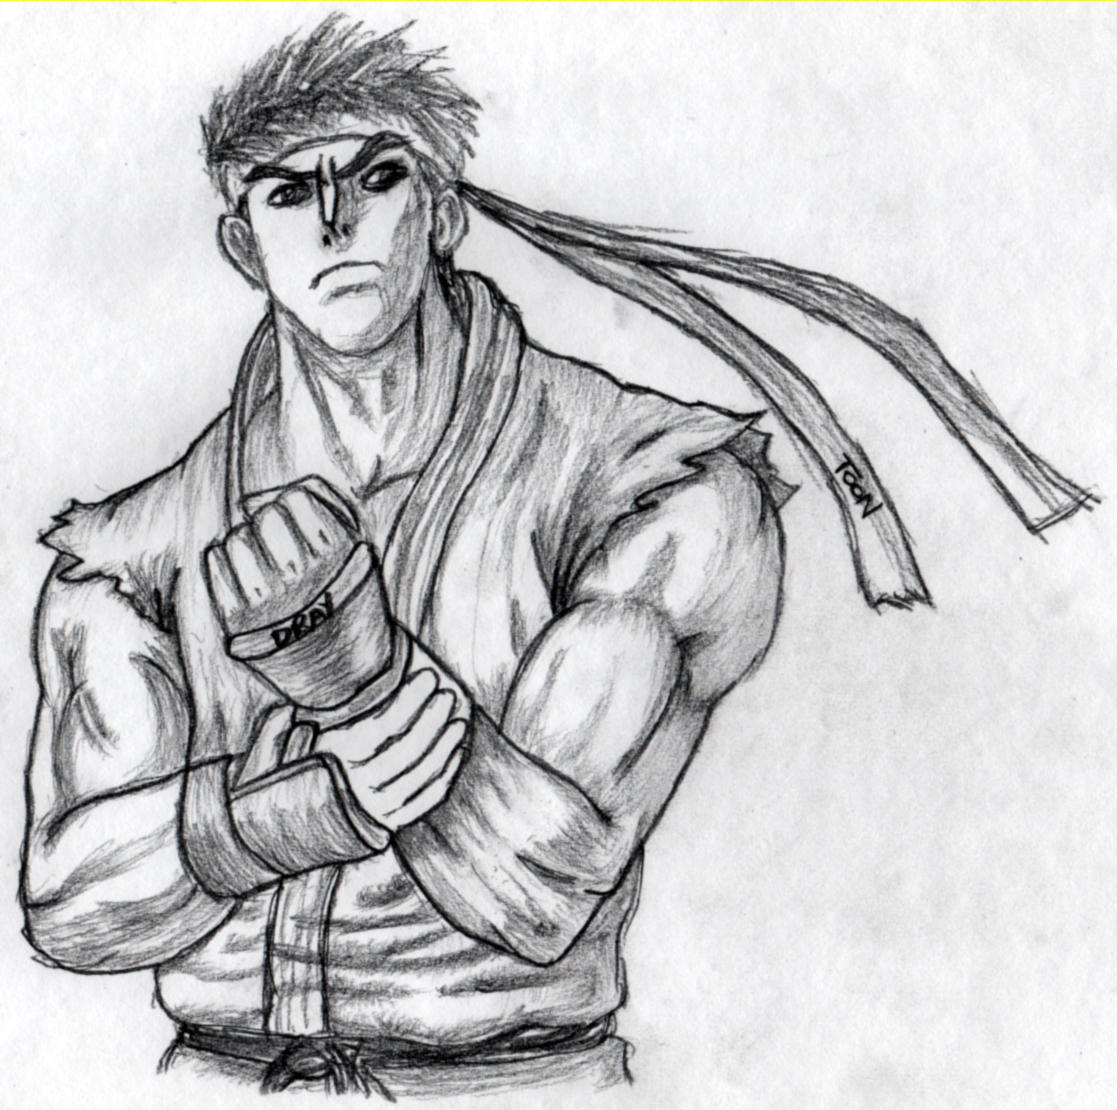 How To Draw Ryu Street Fighter 4